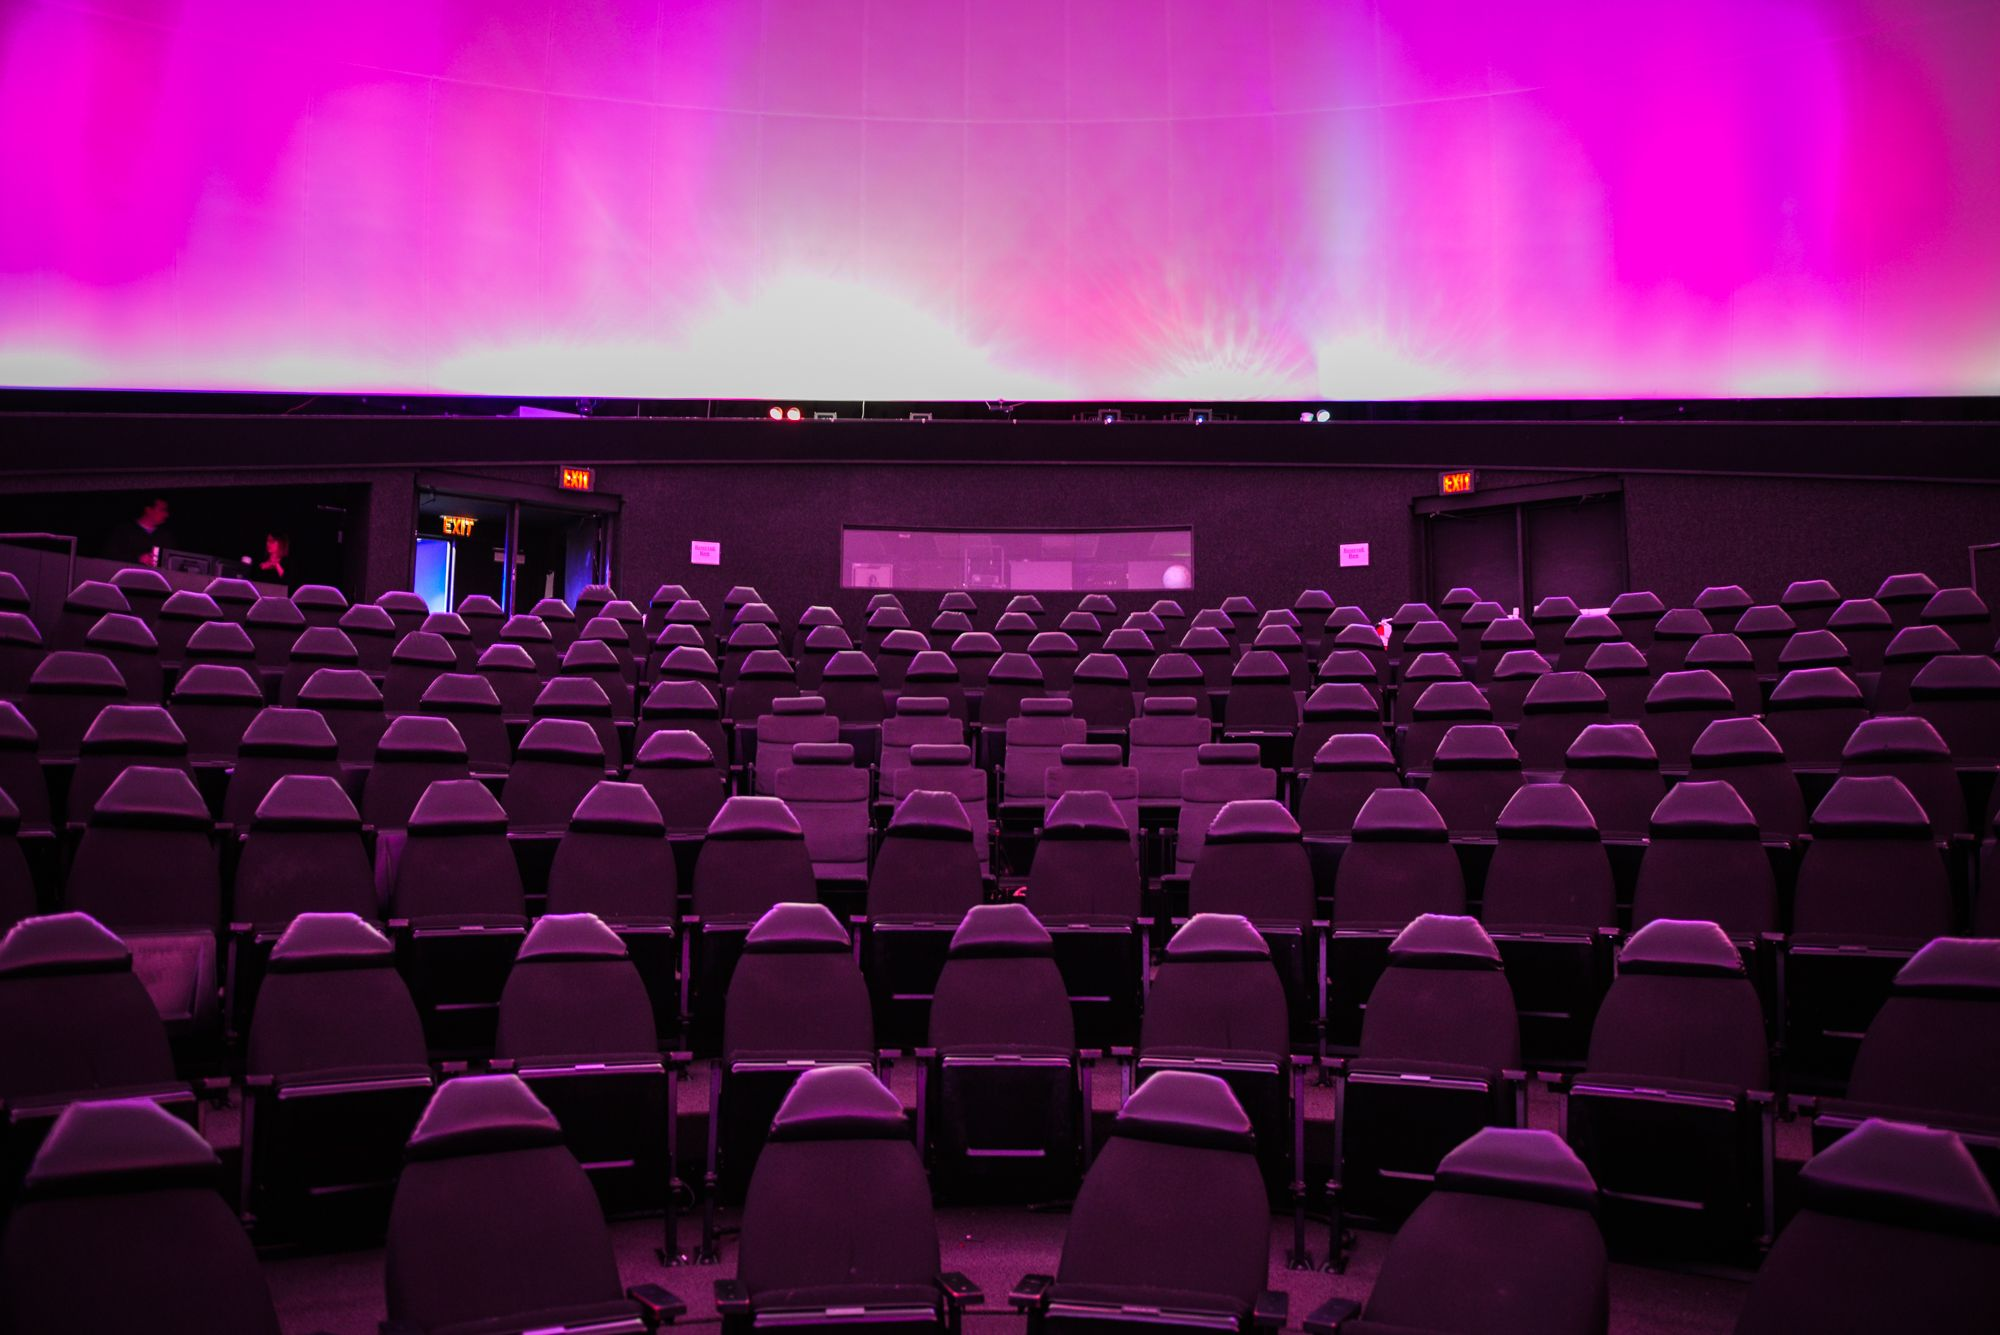 Definit Space Theater at the Adler Planetarium